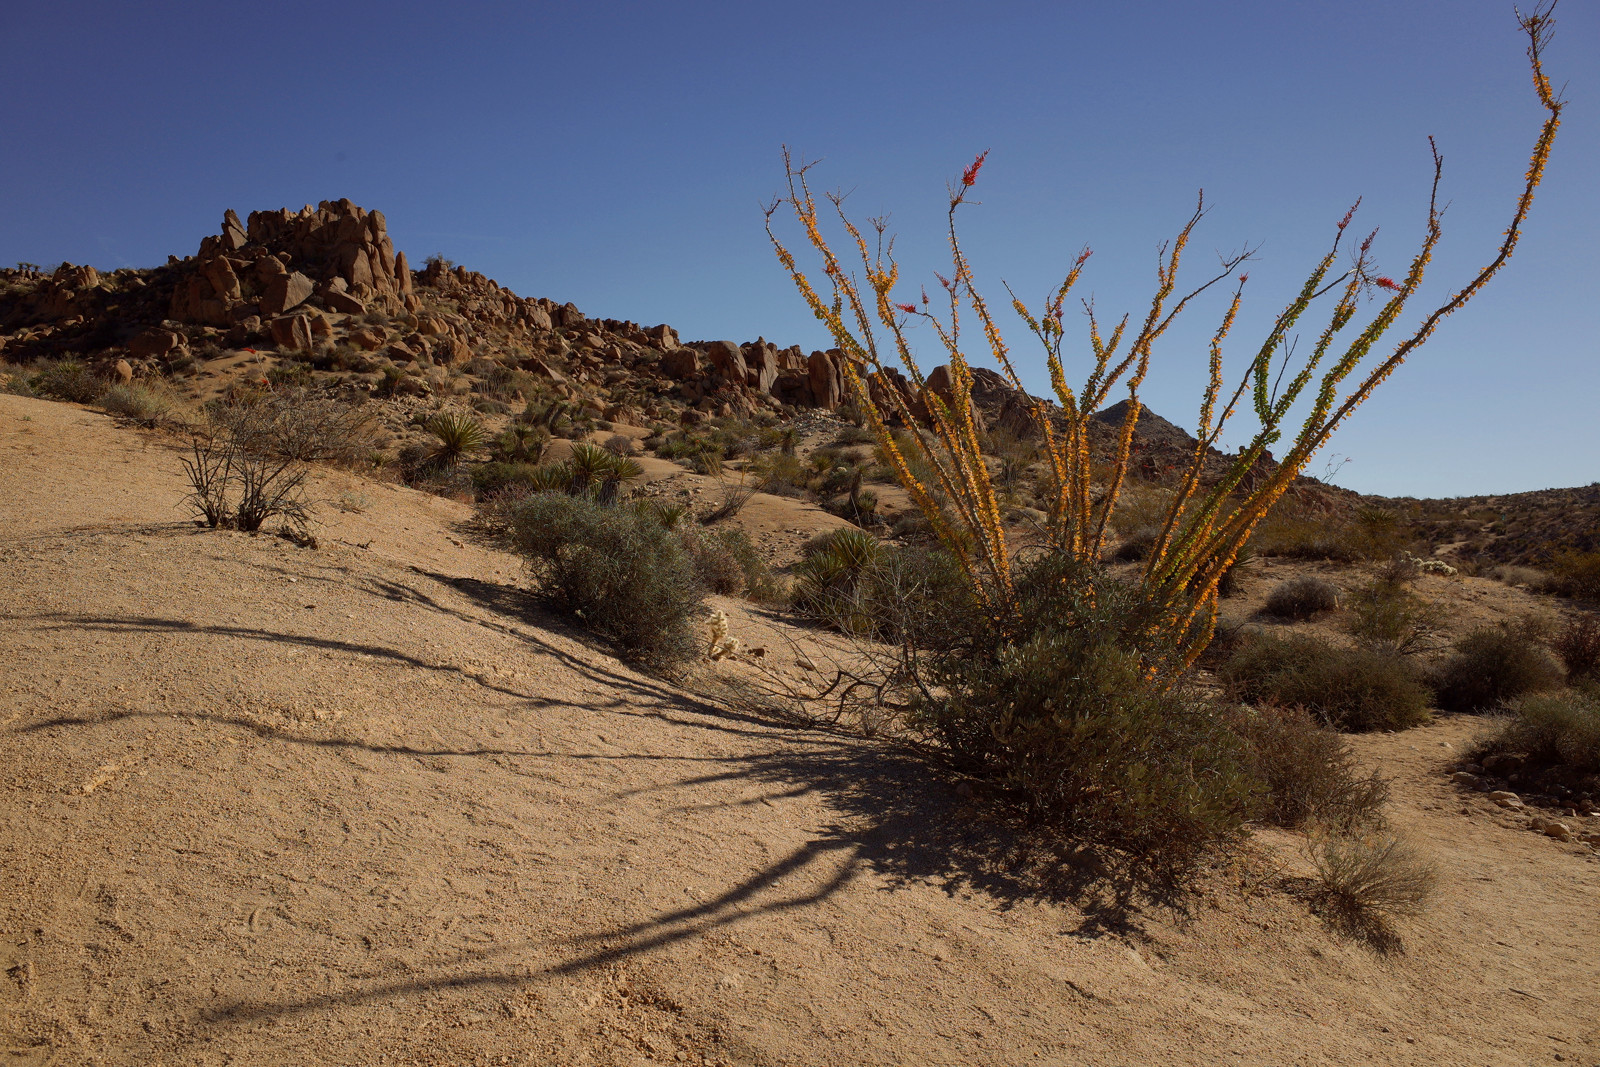 Flowering ocotillo on the trail to the Lost Palms Canyon in Joshua Tree National Park